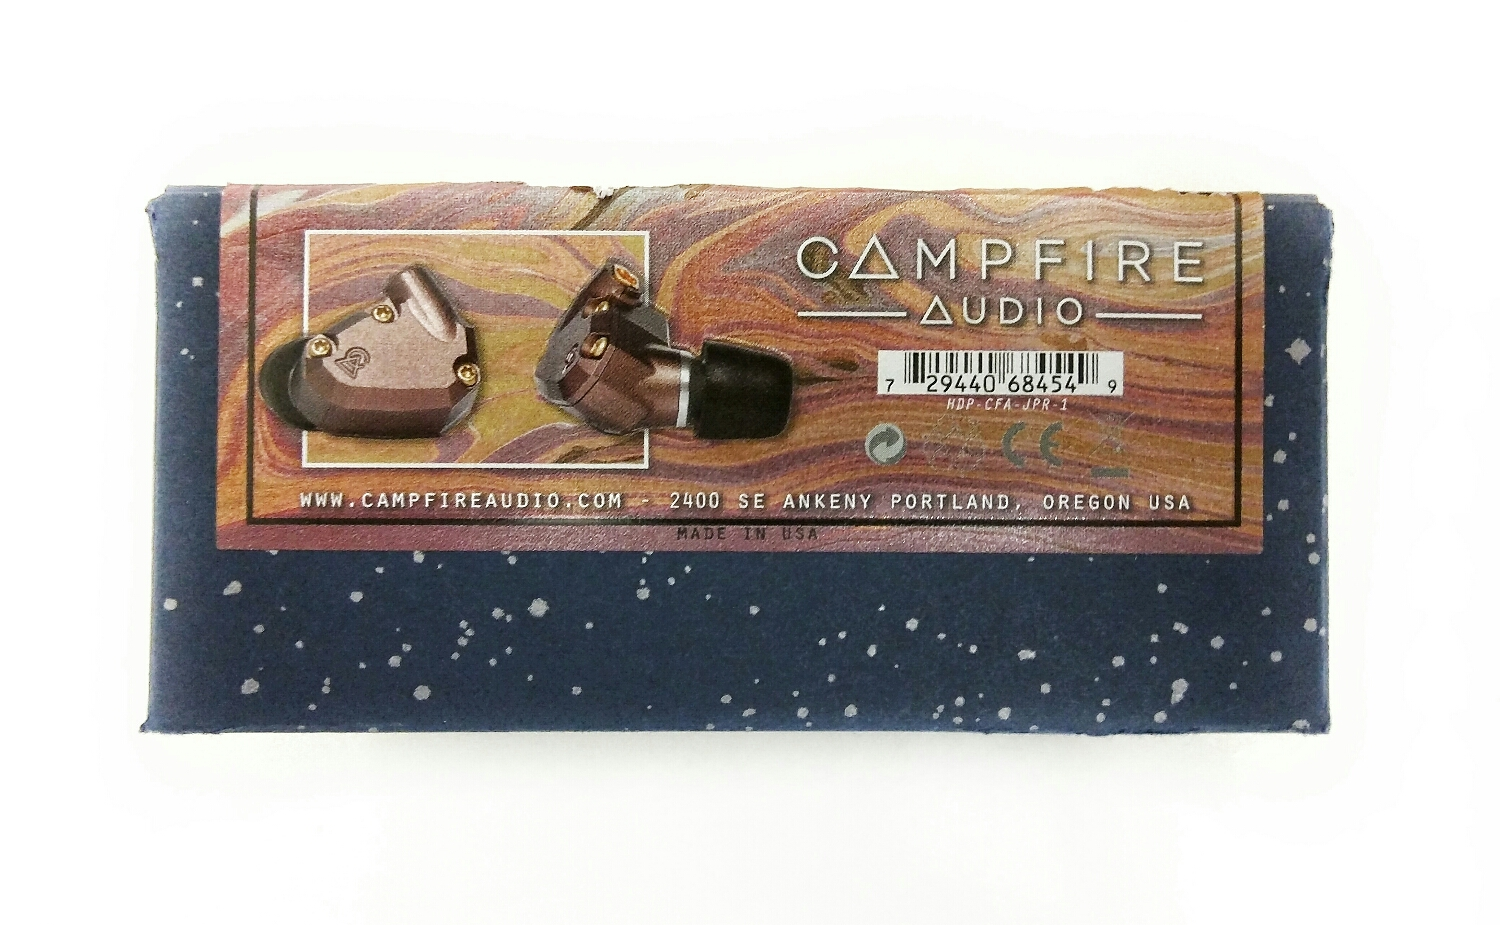 The box for the Campfire Audio Jupiter Earphones.